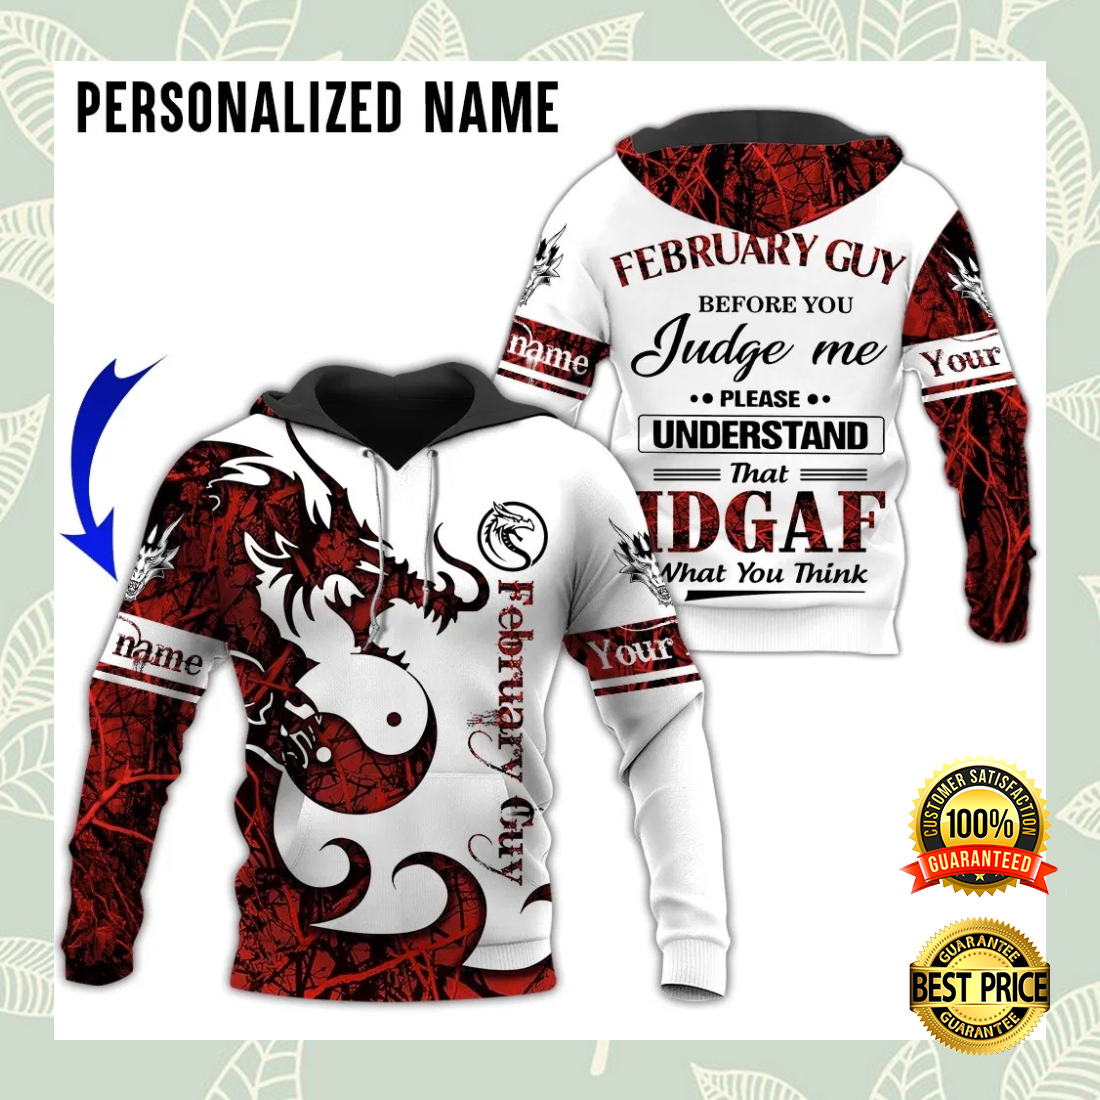 PERSONALIZED DRAGON FEBRUARY GUY ALL OVER PRINTED 3D HOODIE 6